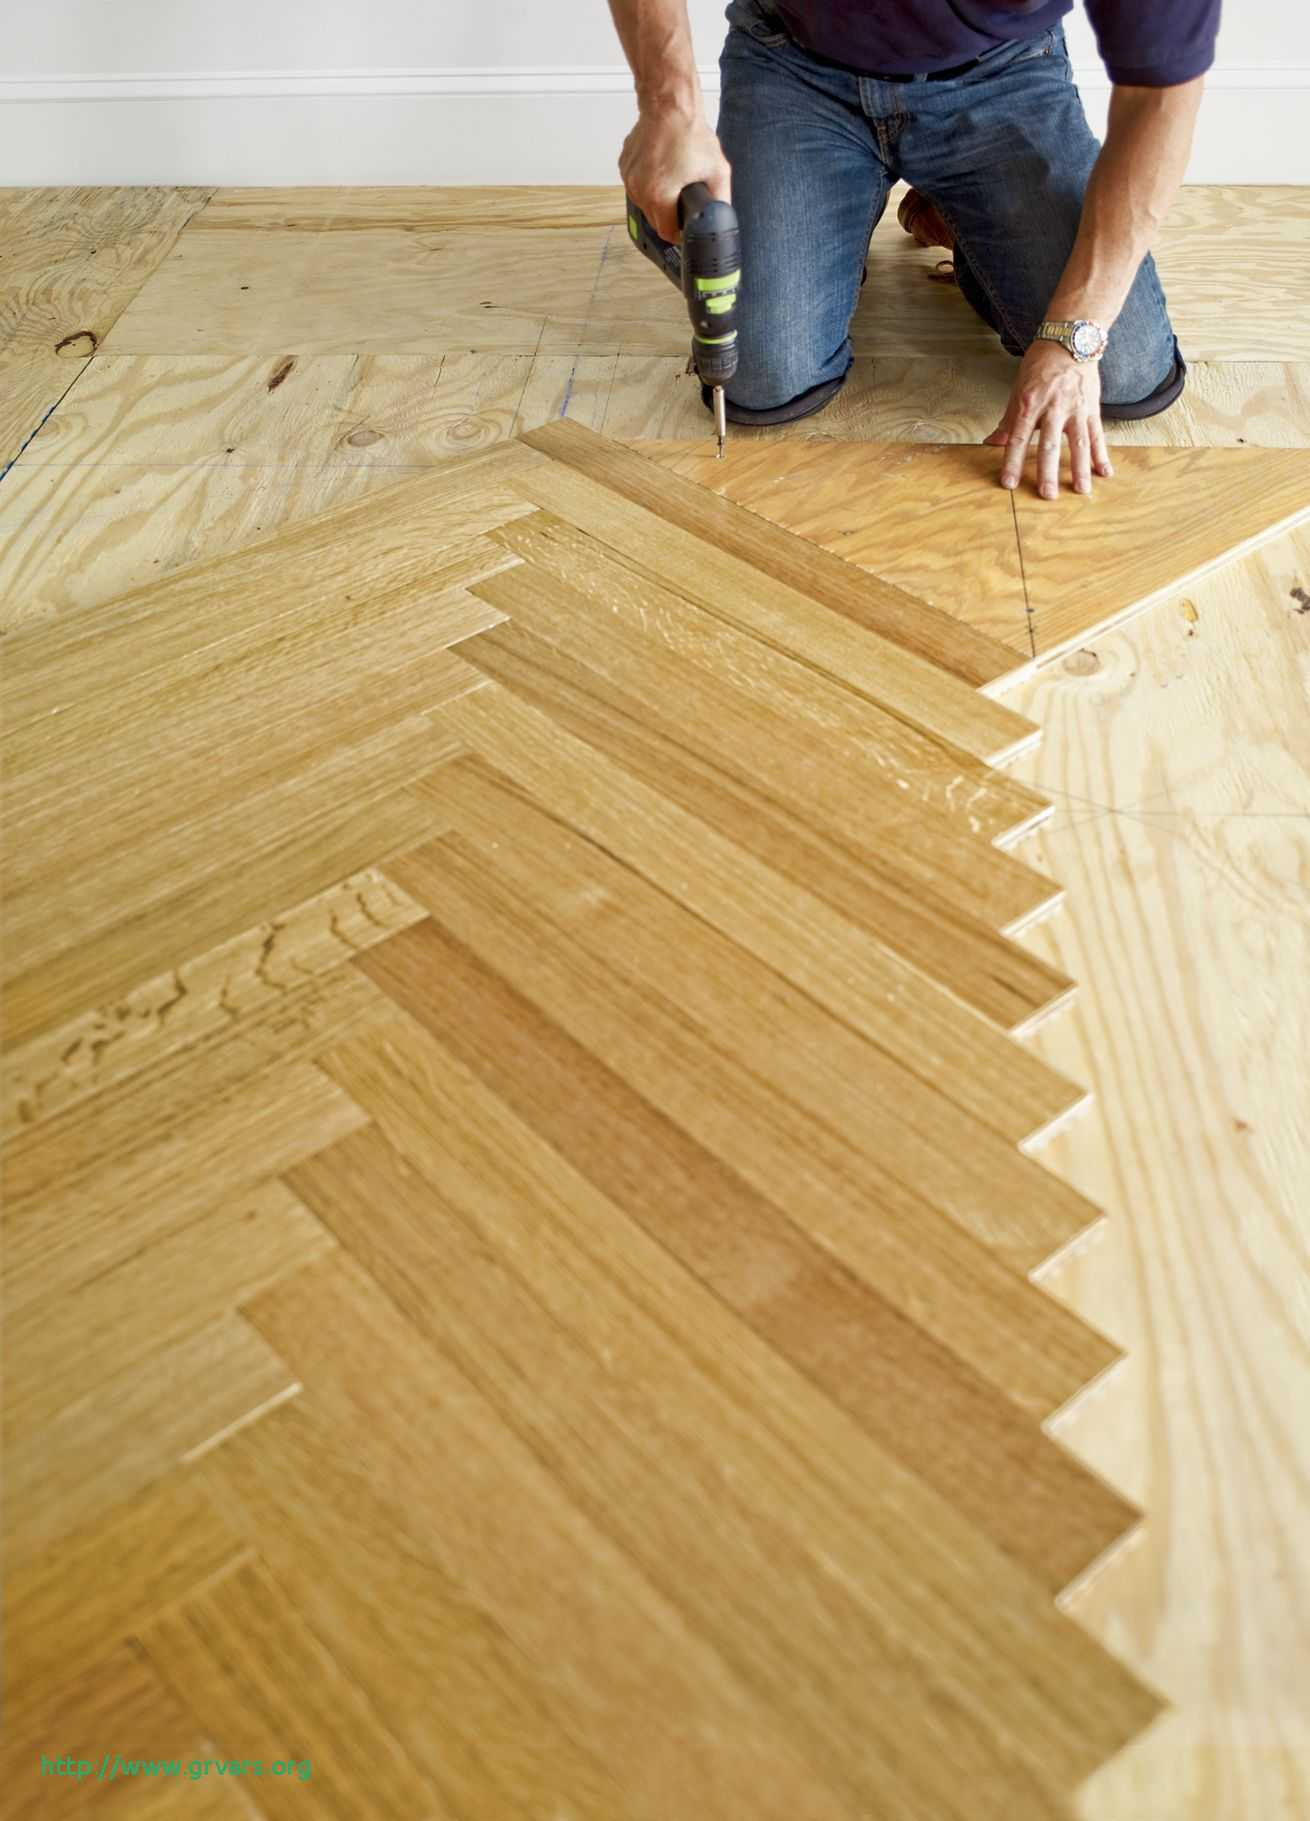 Hardwood Floor Refinishing Las Vegas Of 20 Luxe Floor Buffing Jobs Ideas Blog Regarding Floor Buffing Jobs Unique How to Install A Herringbone Floor Carpentry